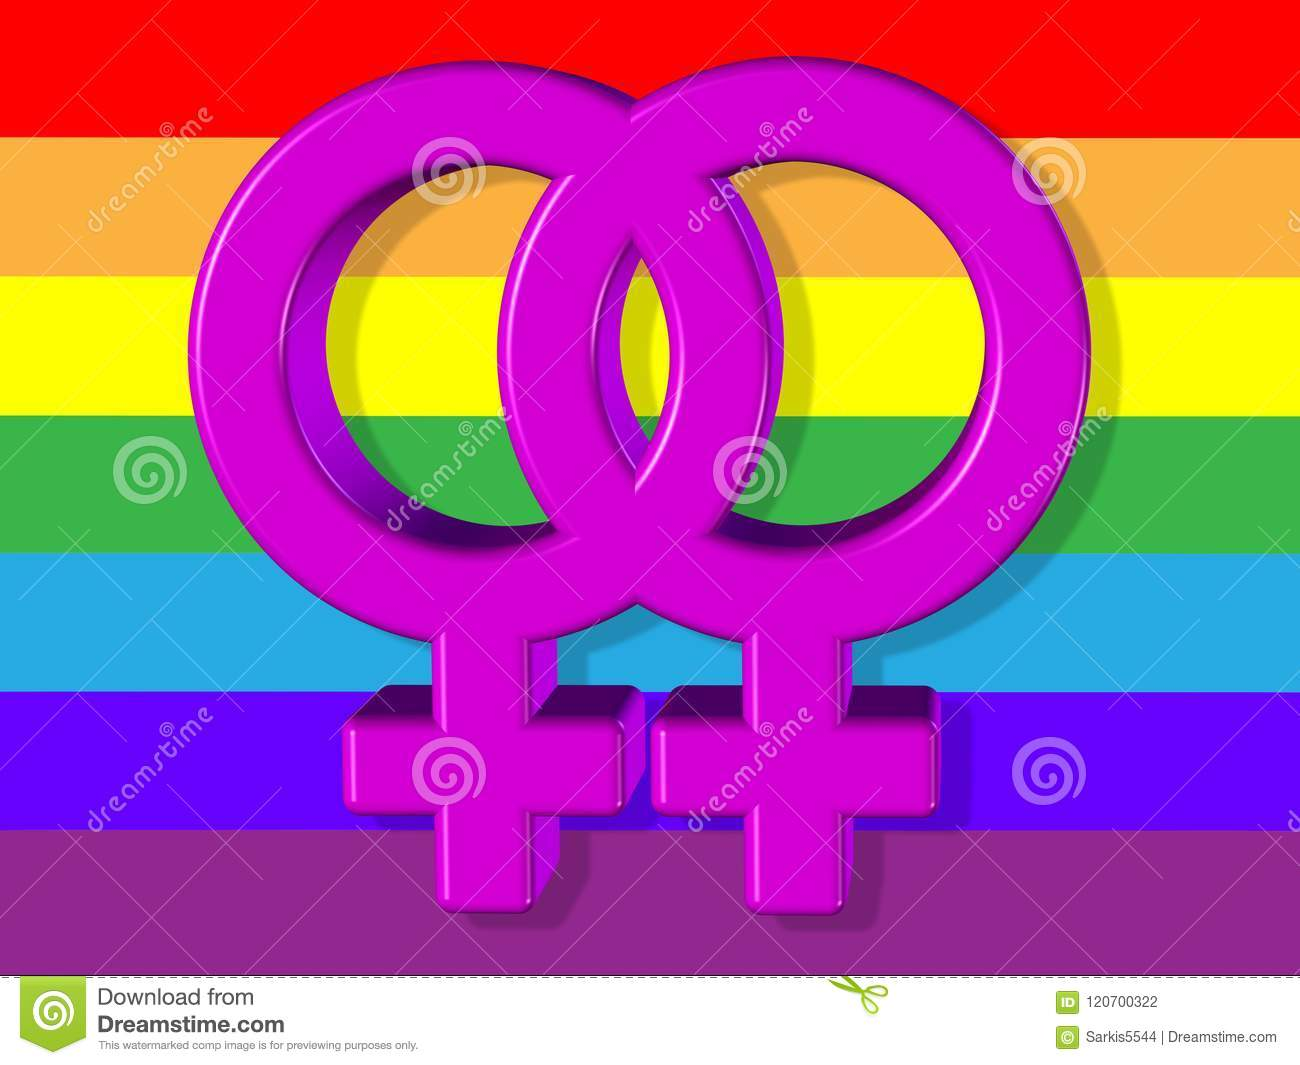 computer generated lesbian picture